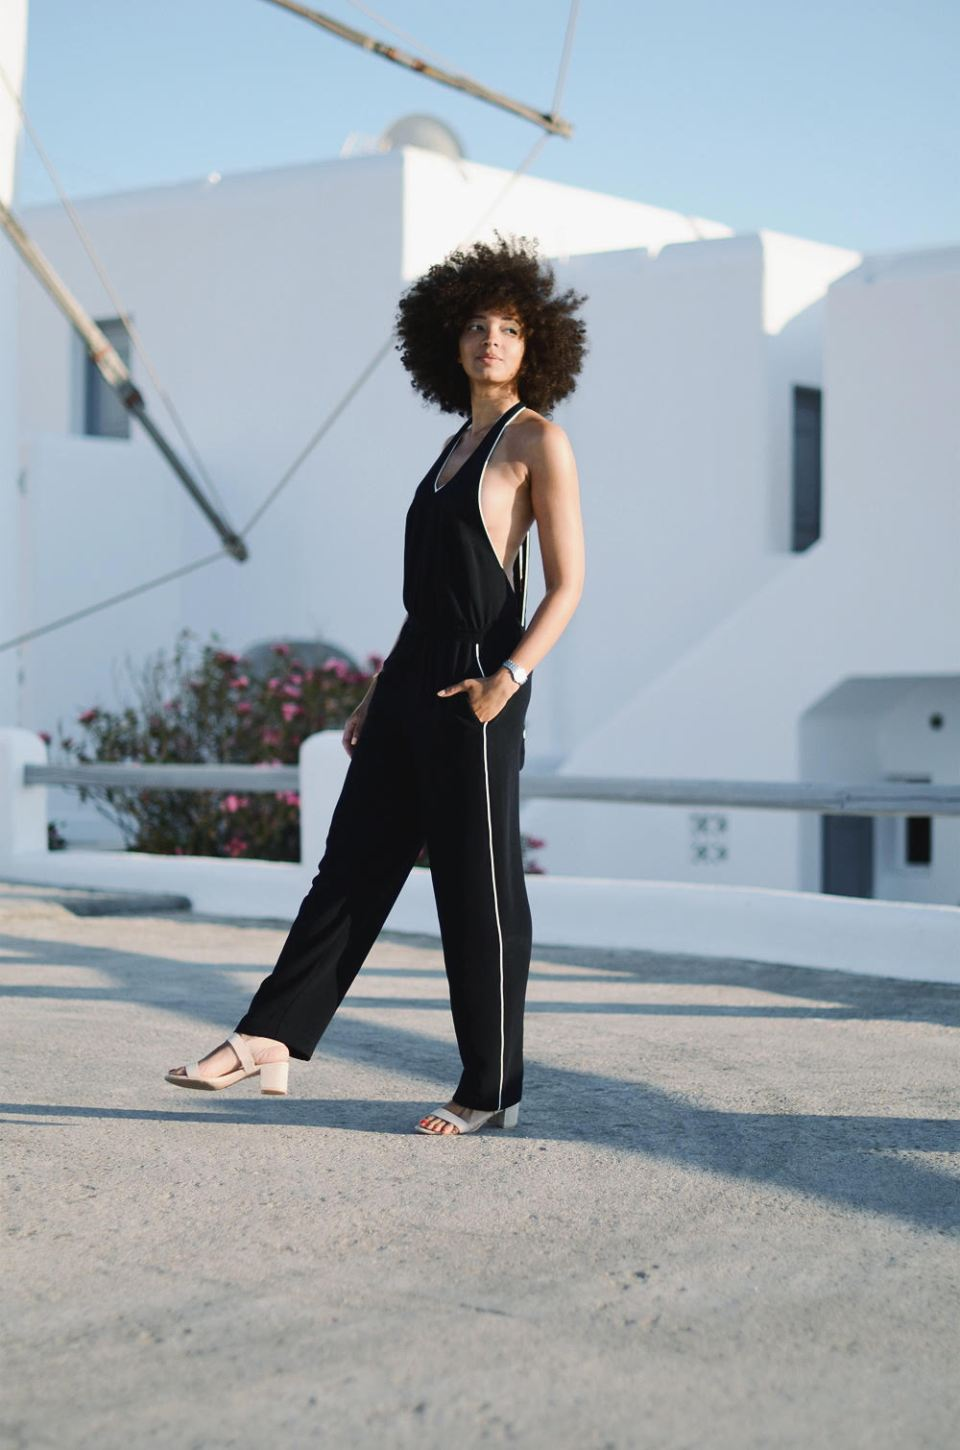 mercredie-blog-mode-geneve-suisse-switzerland-geneva-blogger-swiss-h&m-jumpsuit-combinaison-afro-natural-hair-cheveux-frises-naturels-mykonos-absolut-suites-grece-greece